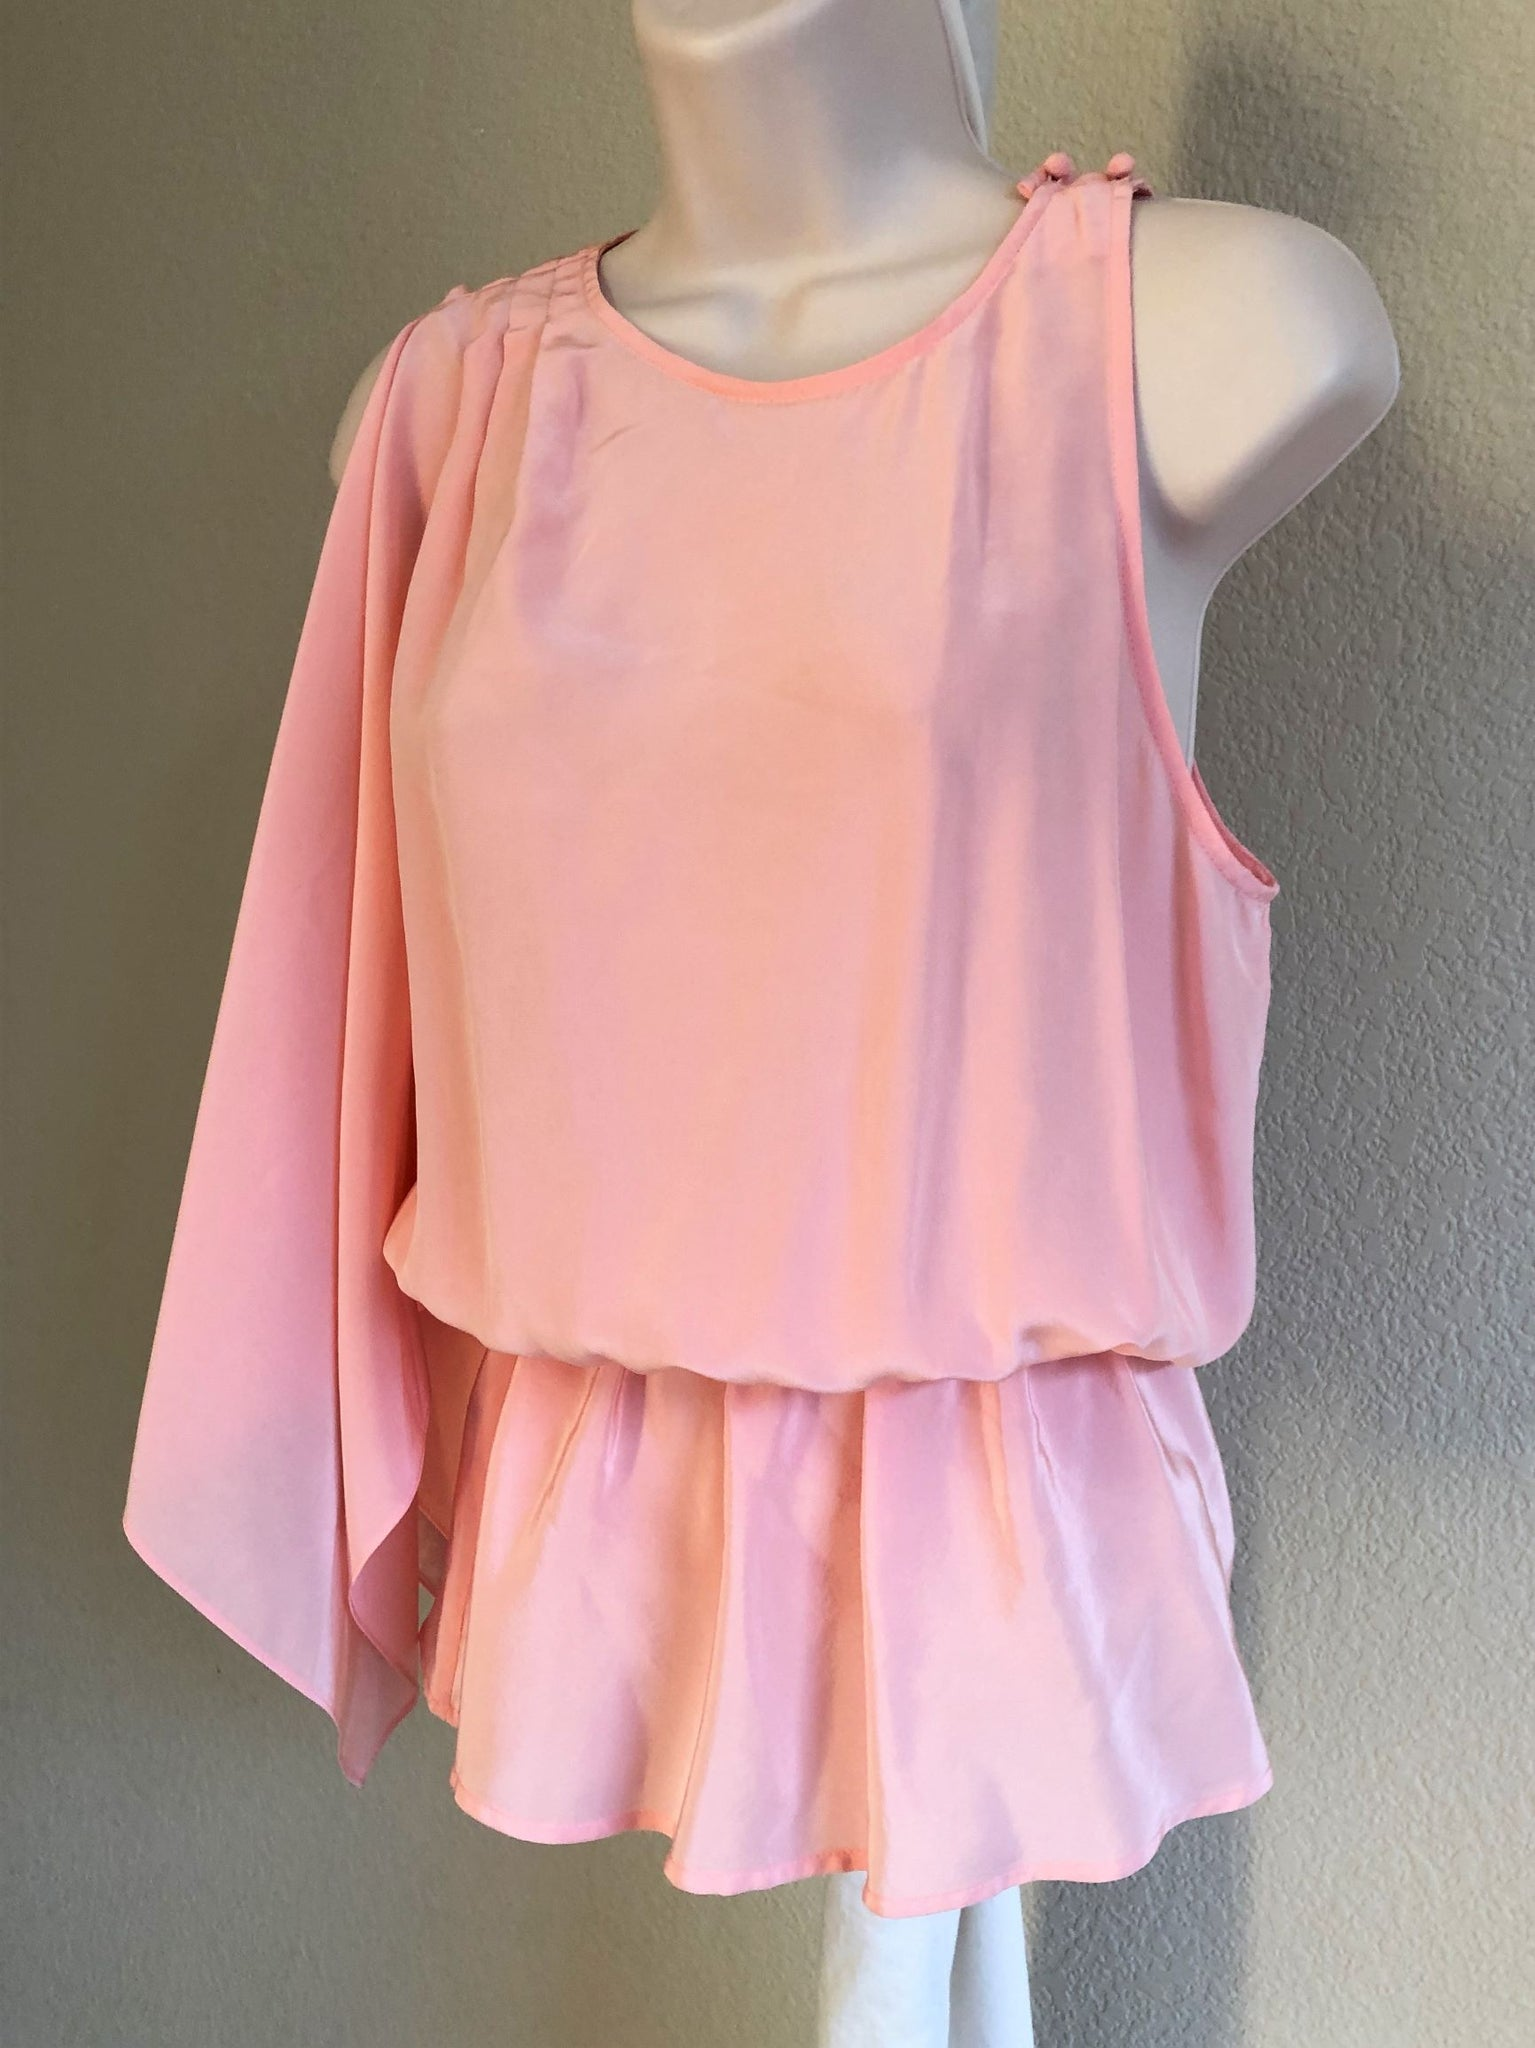 BCBGMaxazria Size Small Pink One Sleeve Top